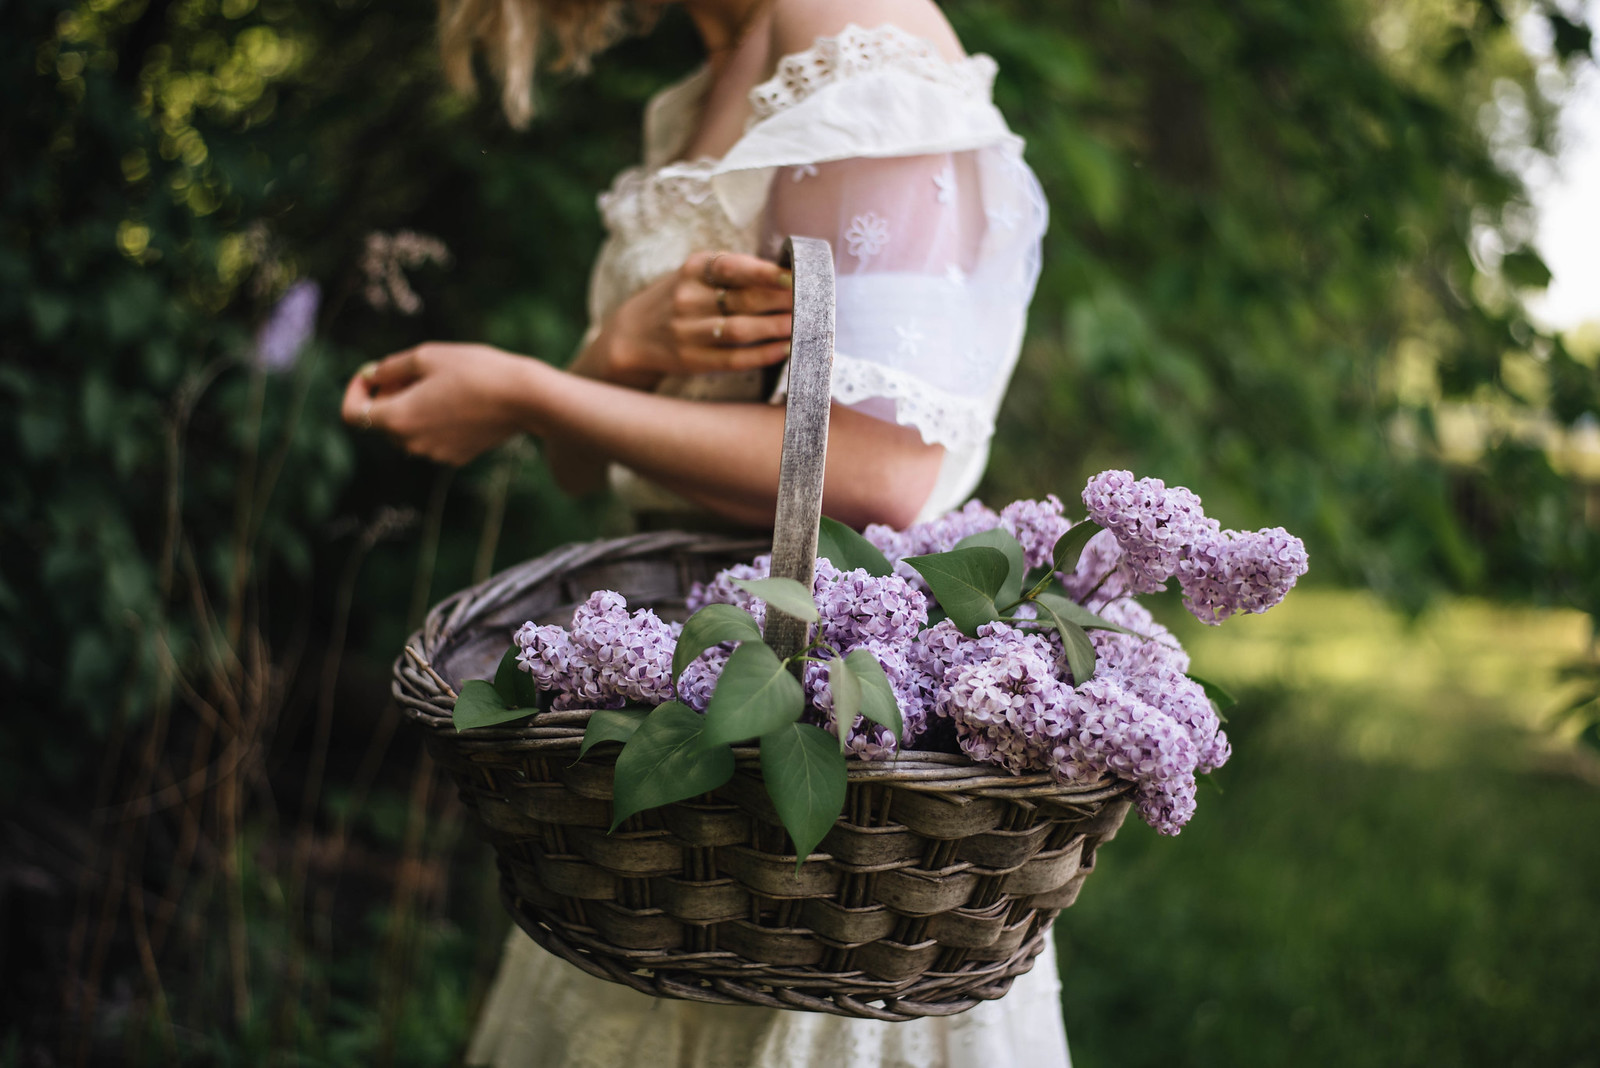 Lilacs and White Dresses on juliettelaura.blogspot.com